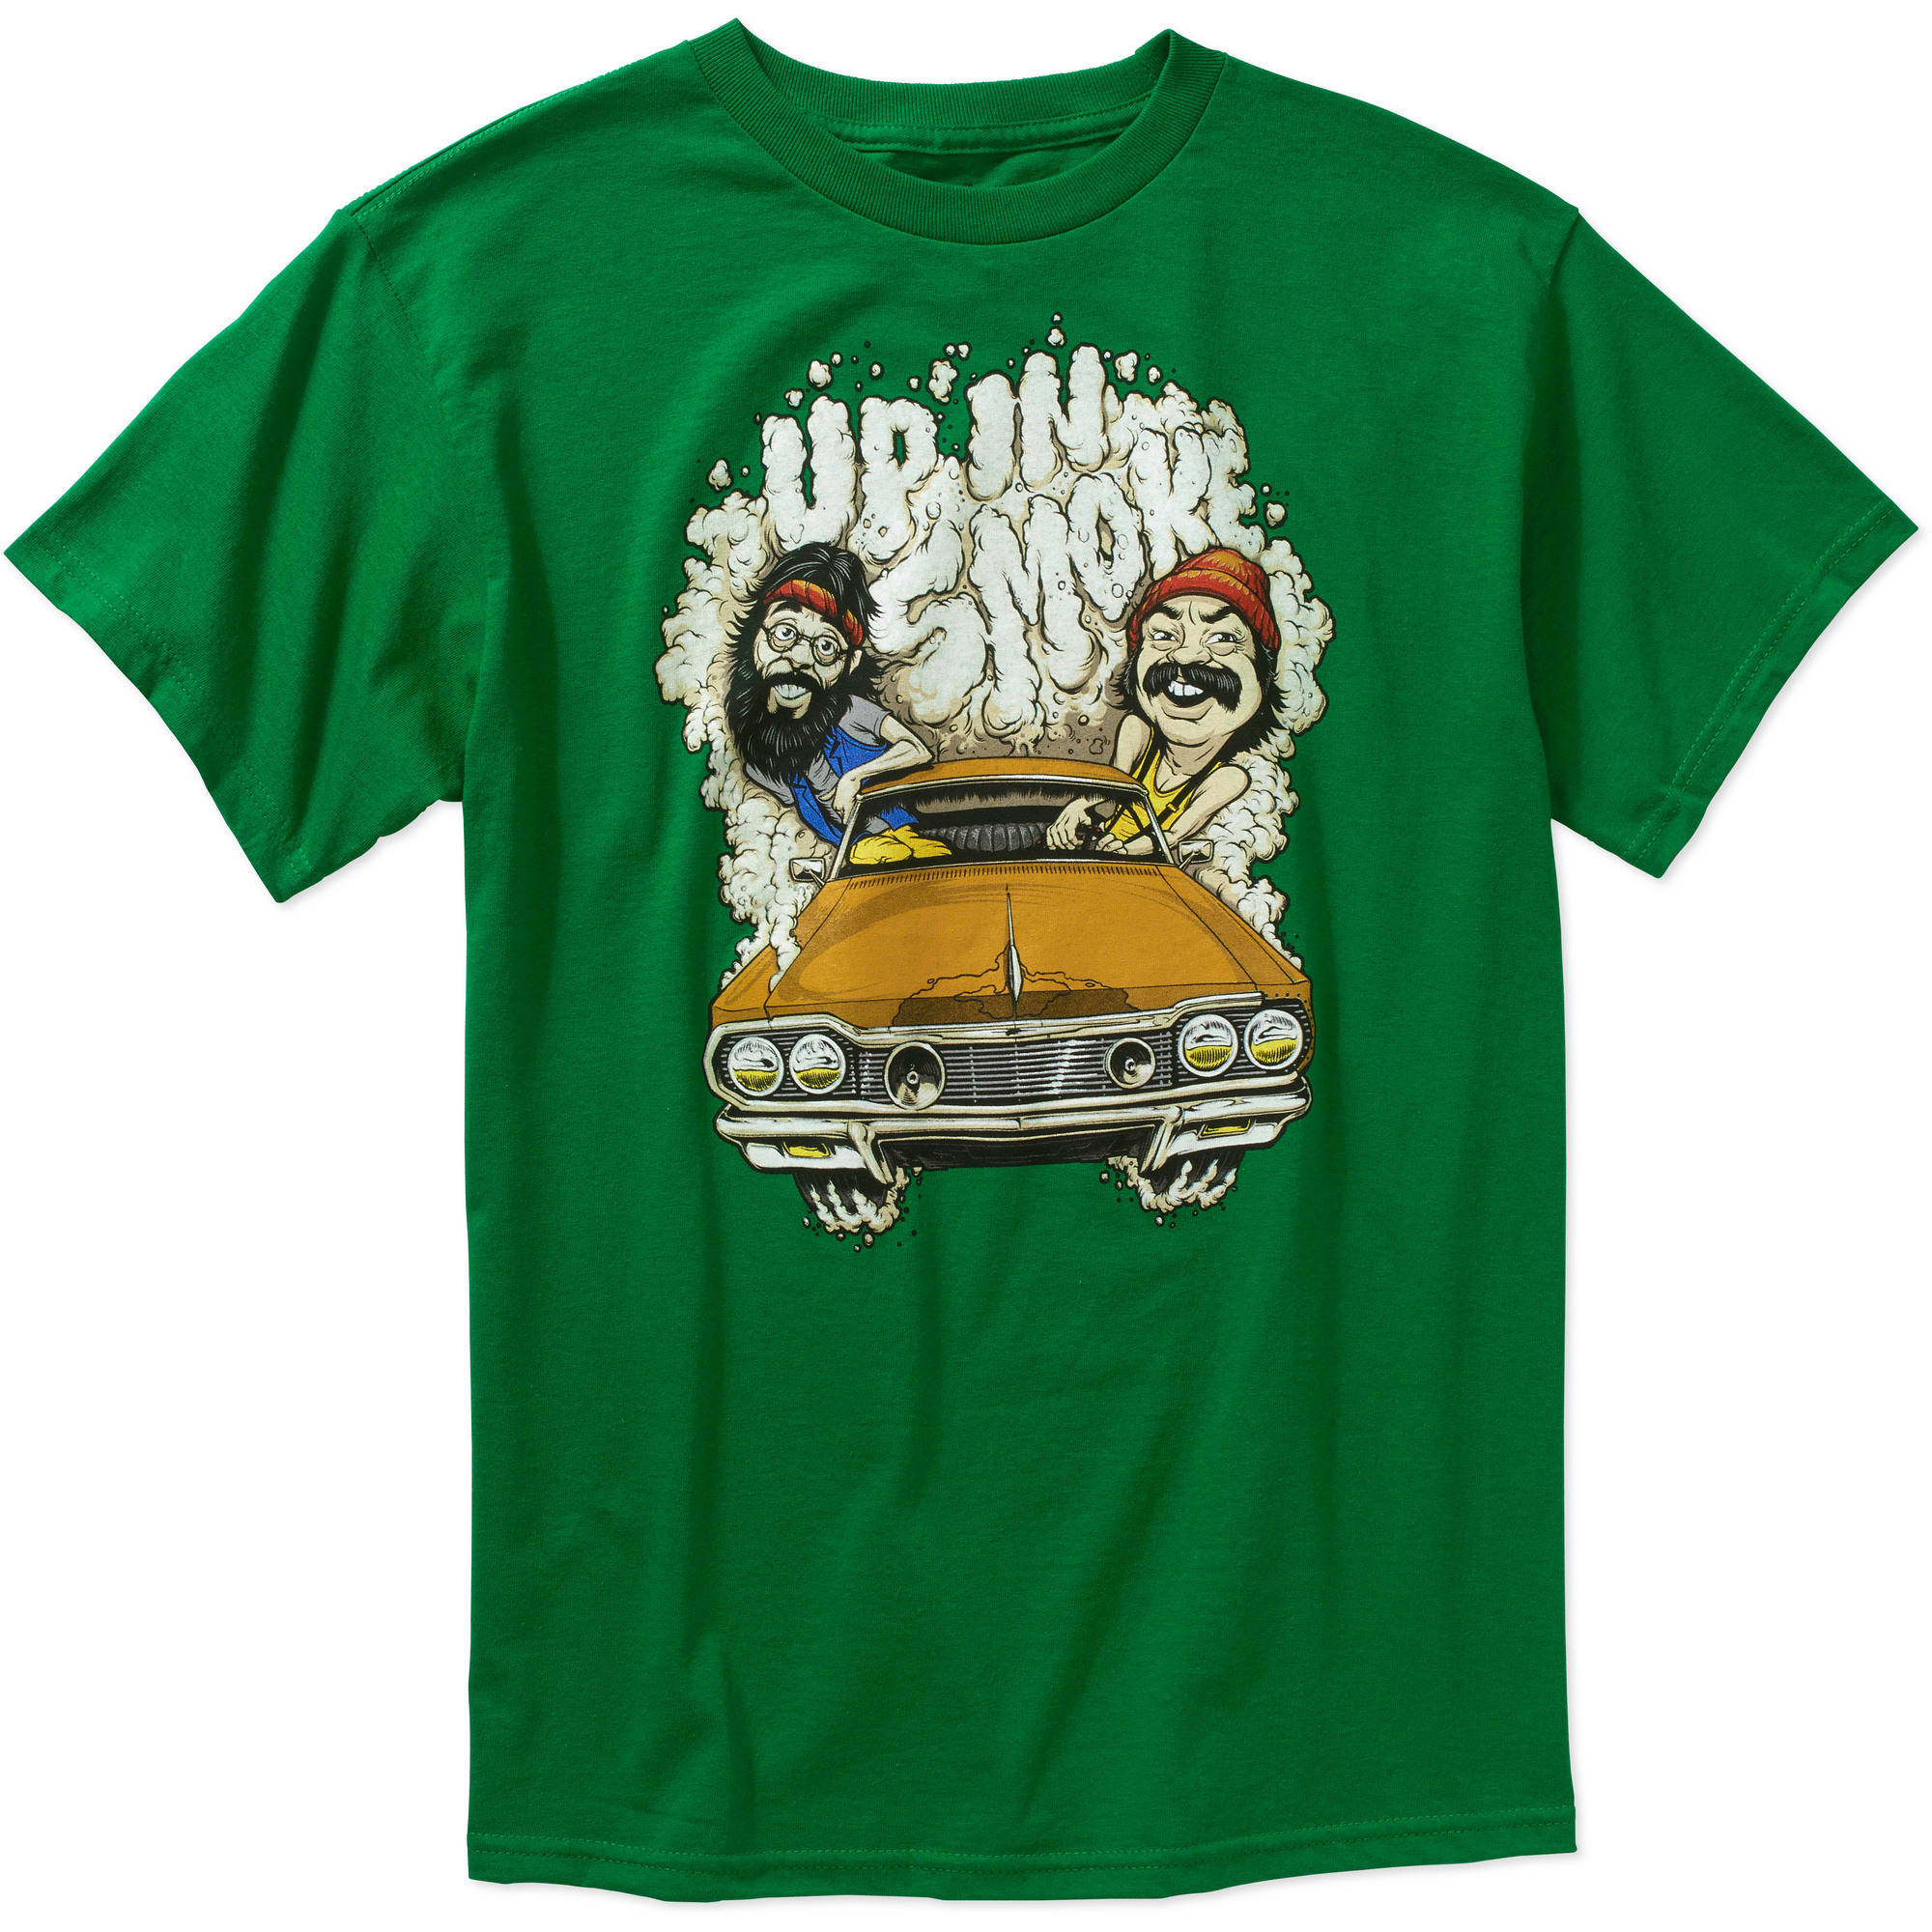 Cheech and Chong Up in Smoke Men's Graphic Tee